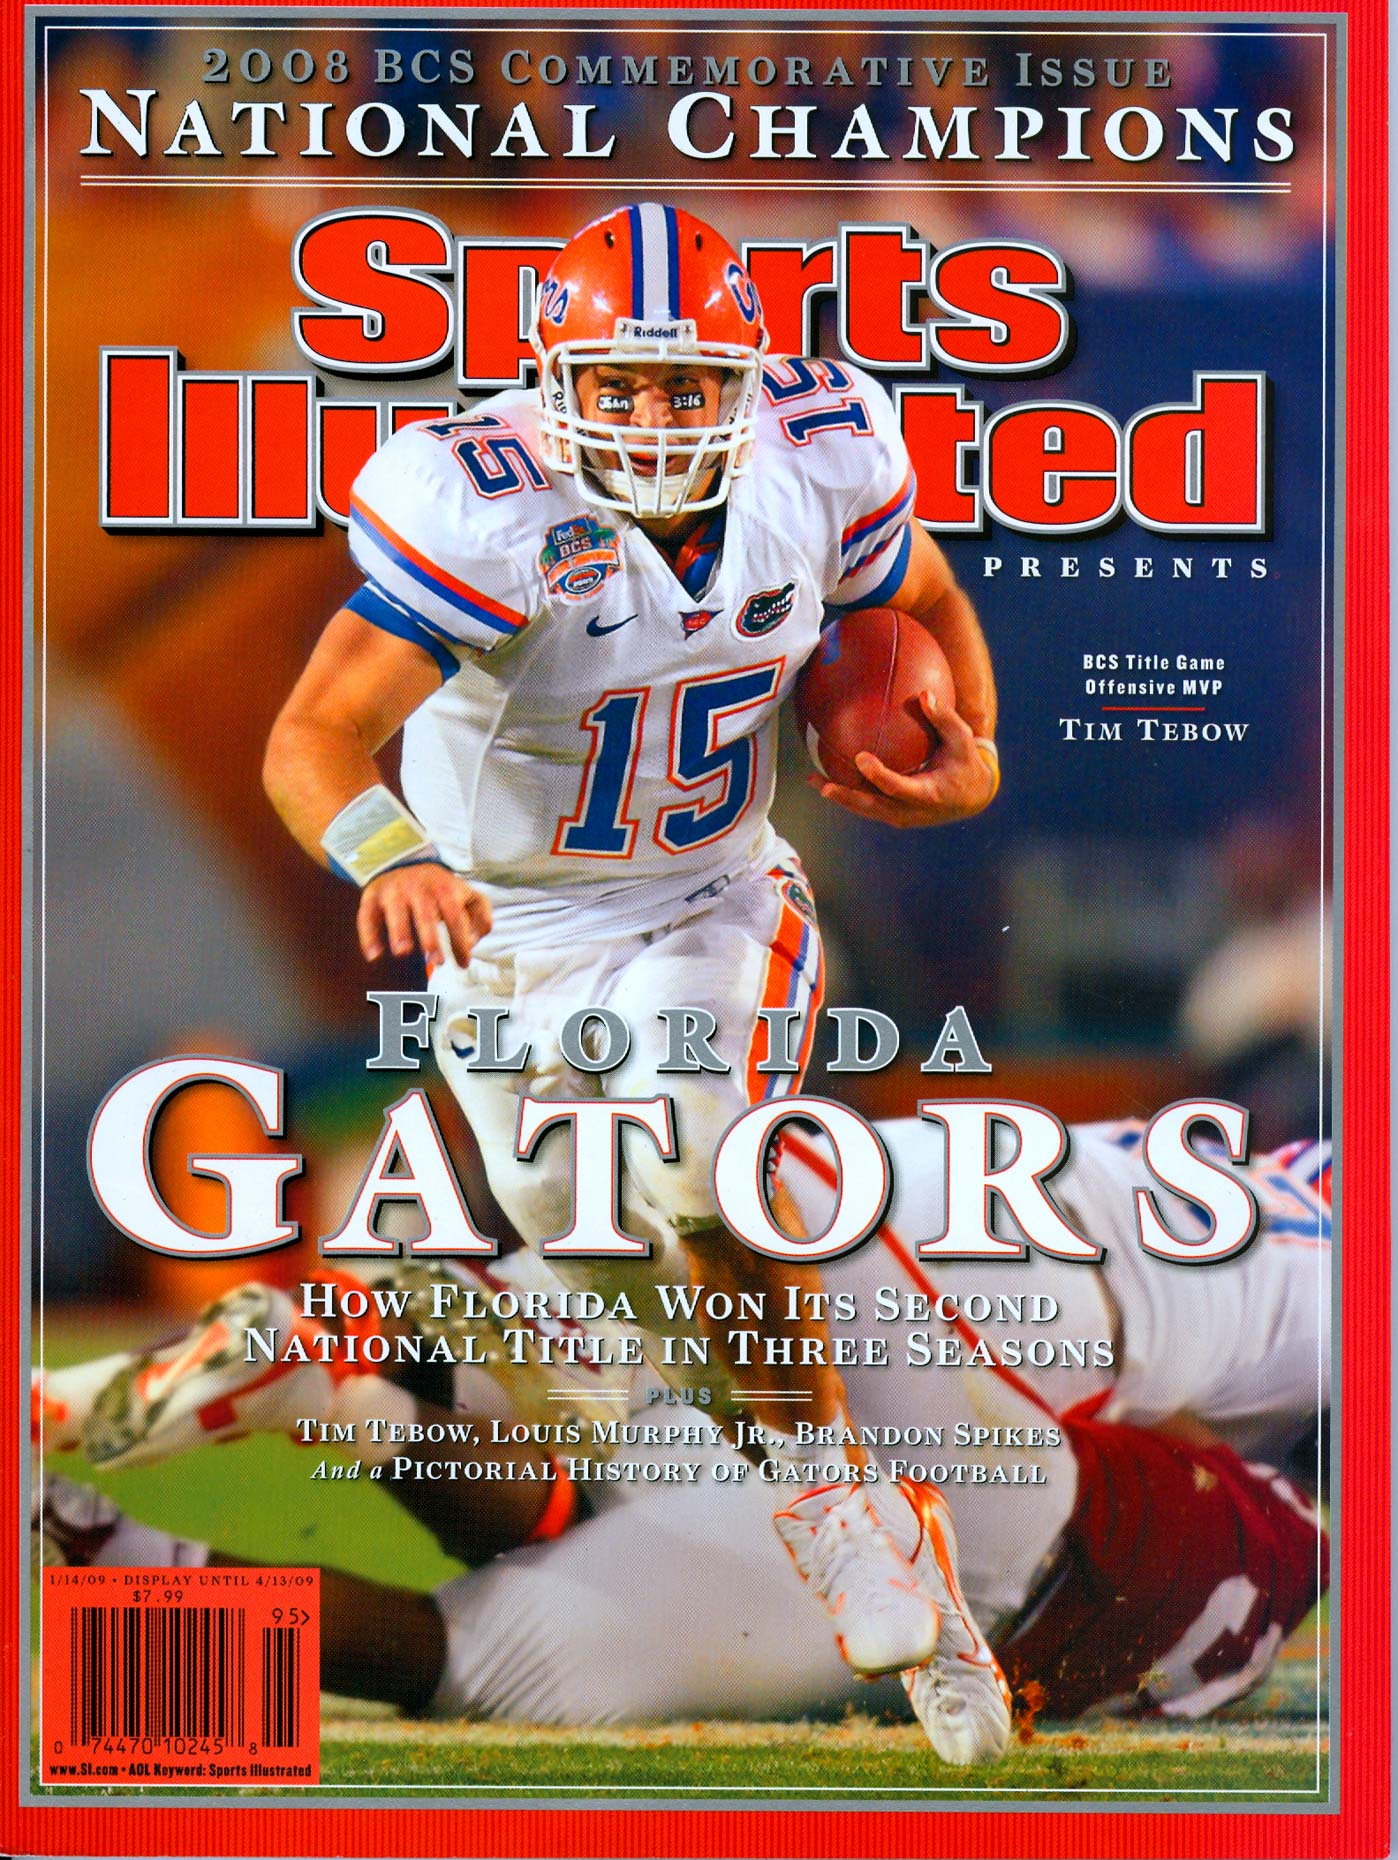 Florida Gators quarterback Tim Tebow on the cover of Sports Illustrated.